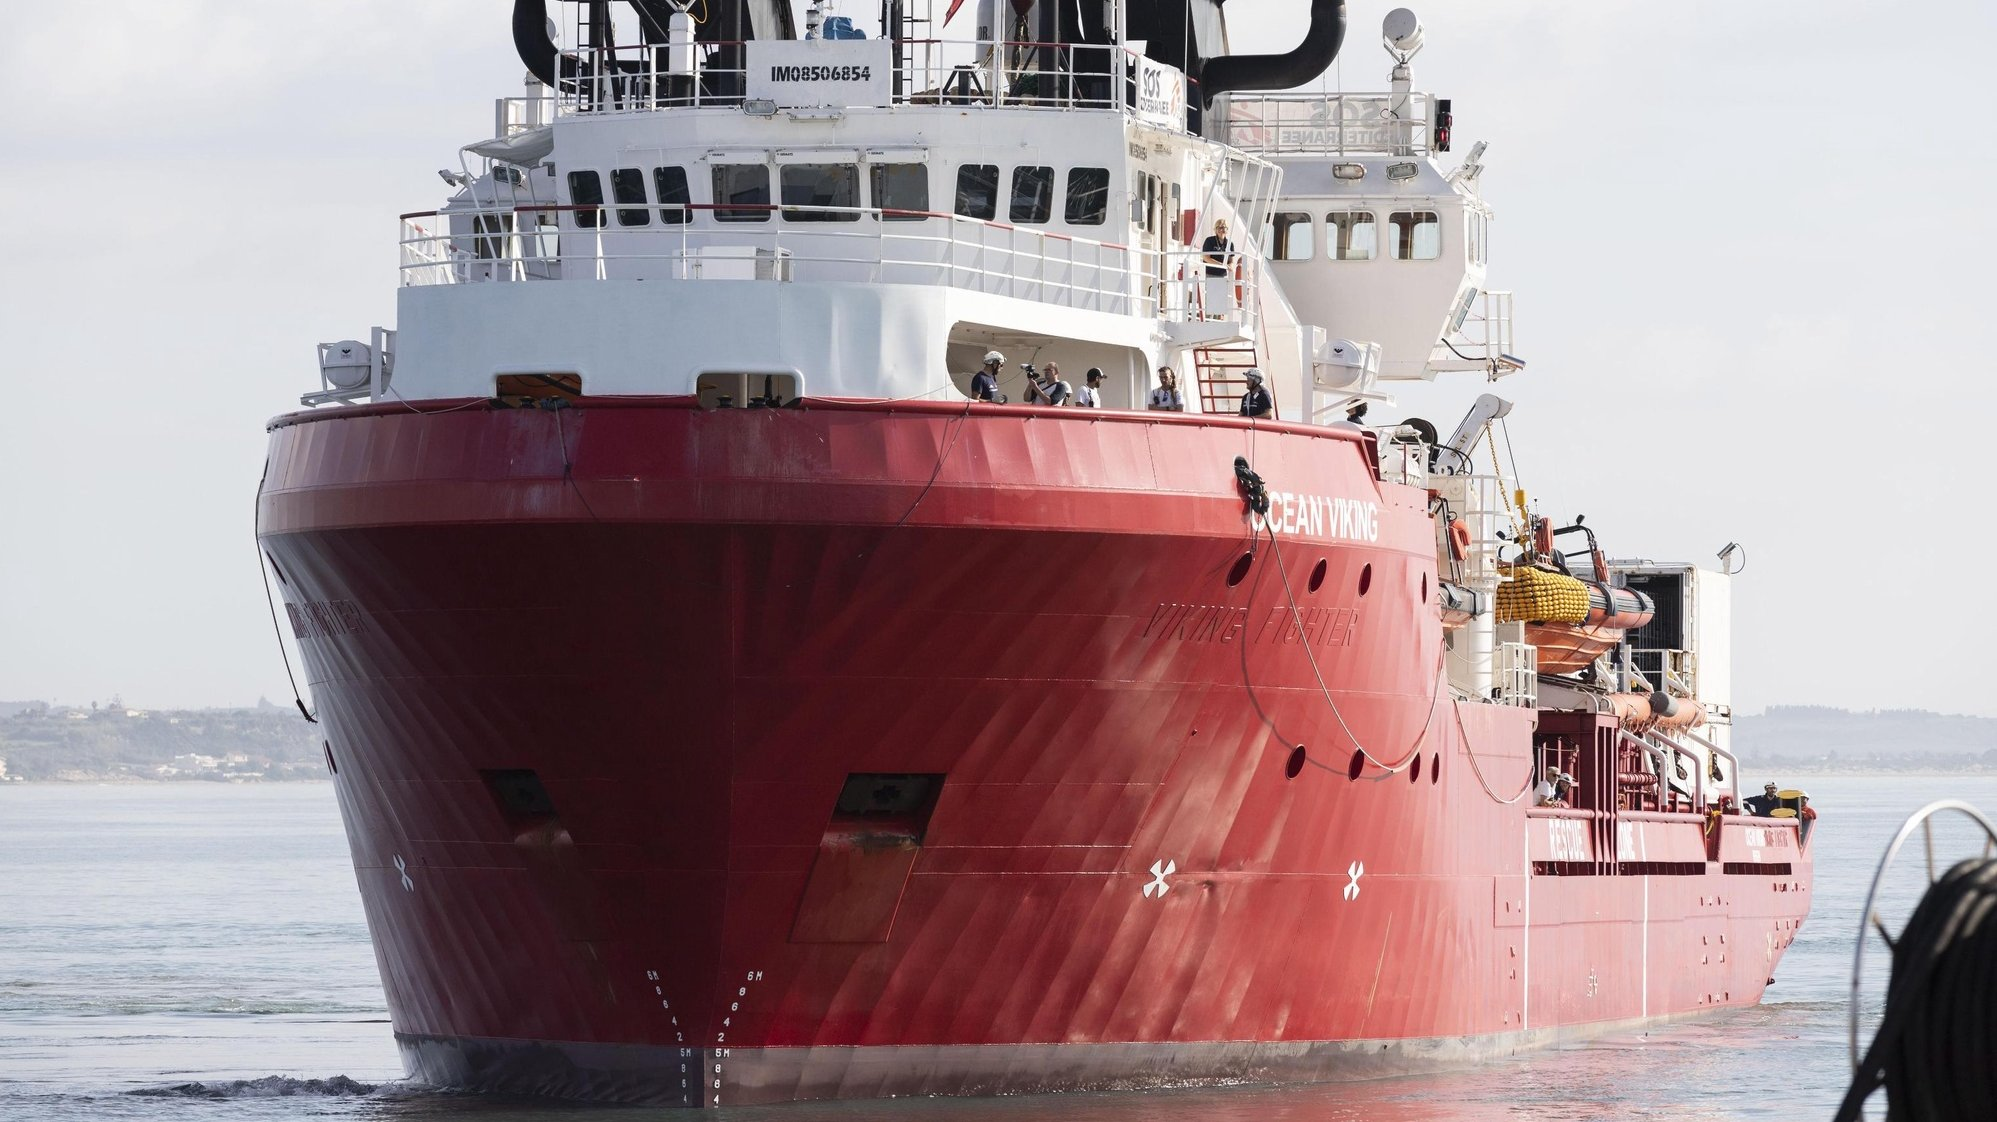 epa07959389 The search-and-rescue ship Ocean Viking arrives in the port of Pozzallo, Italy, 30 October 2019. The rescue ship, chartered by SOS Mediterrranee in partnership with Medecins Sans Frontieres (MSF), rescued 104 migrants in international waters off the coasts of Libya on 18 October 2019.  EPA/FRANCESCO RUTA